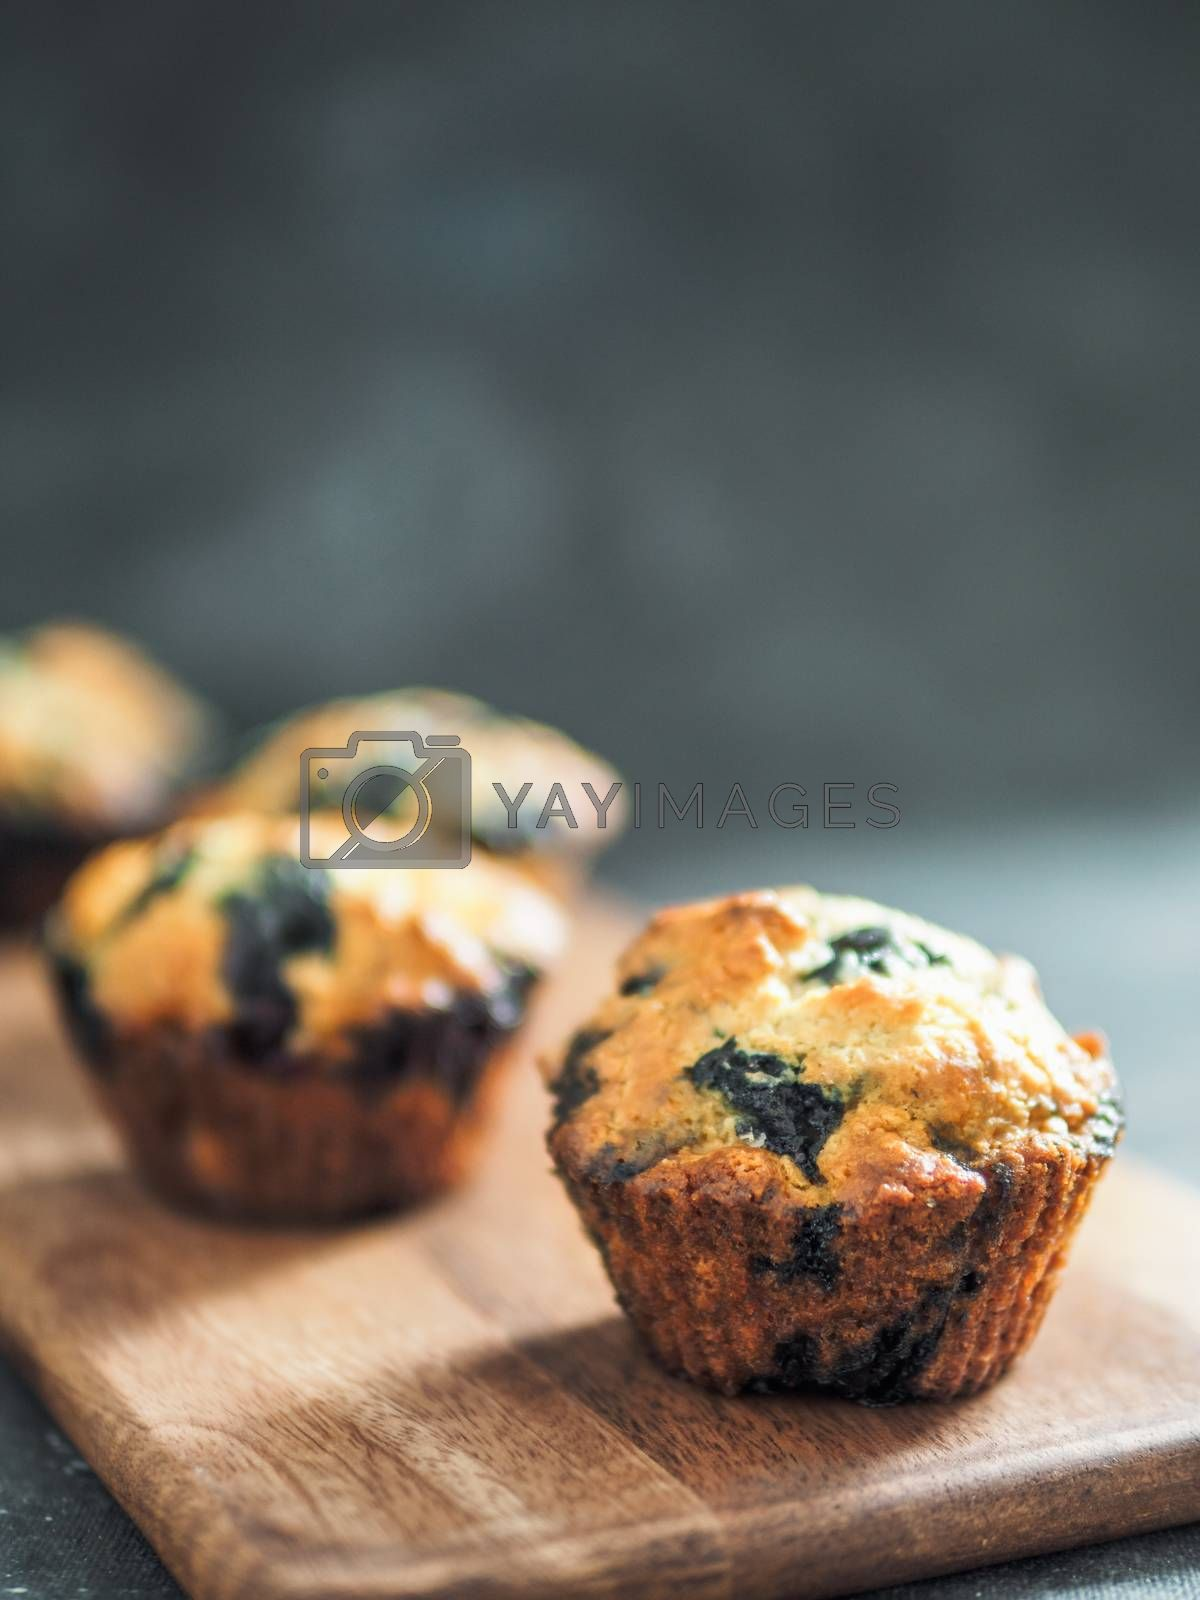 Homemade vegan blueberry muffins on dark background. Copy space for text or design